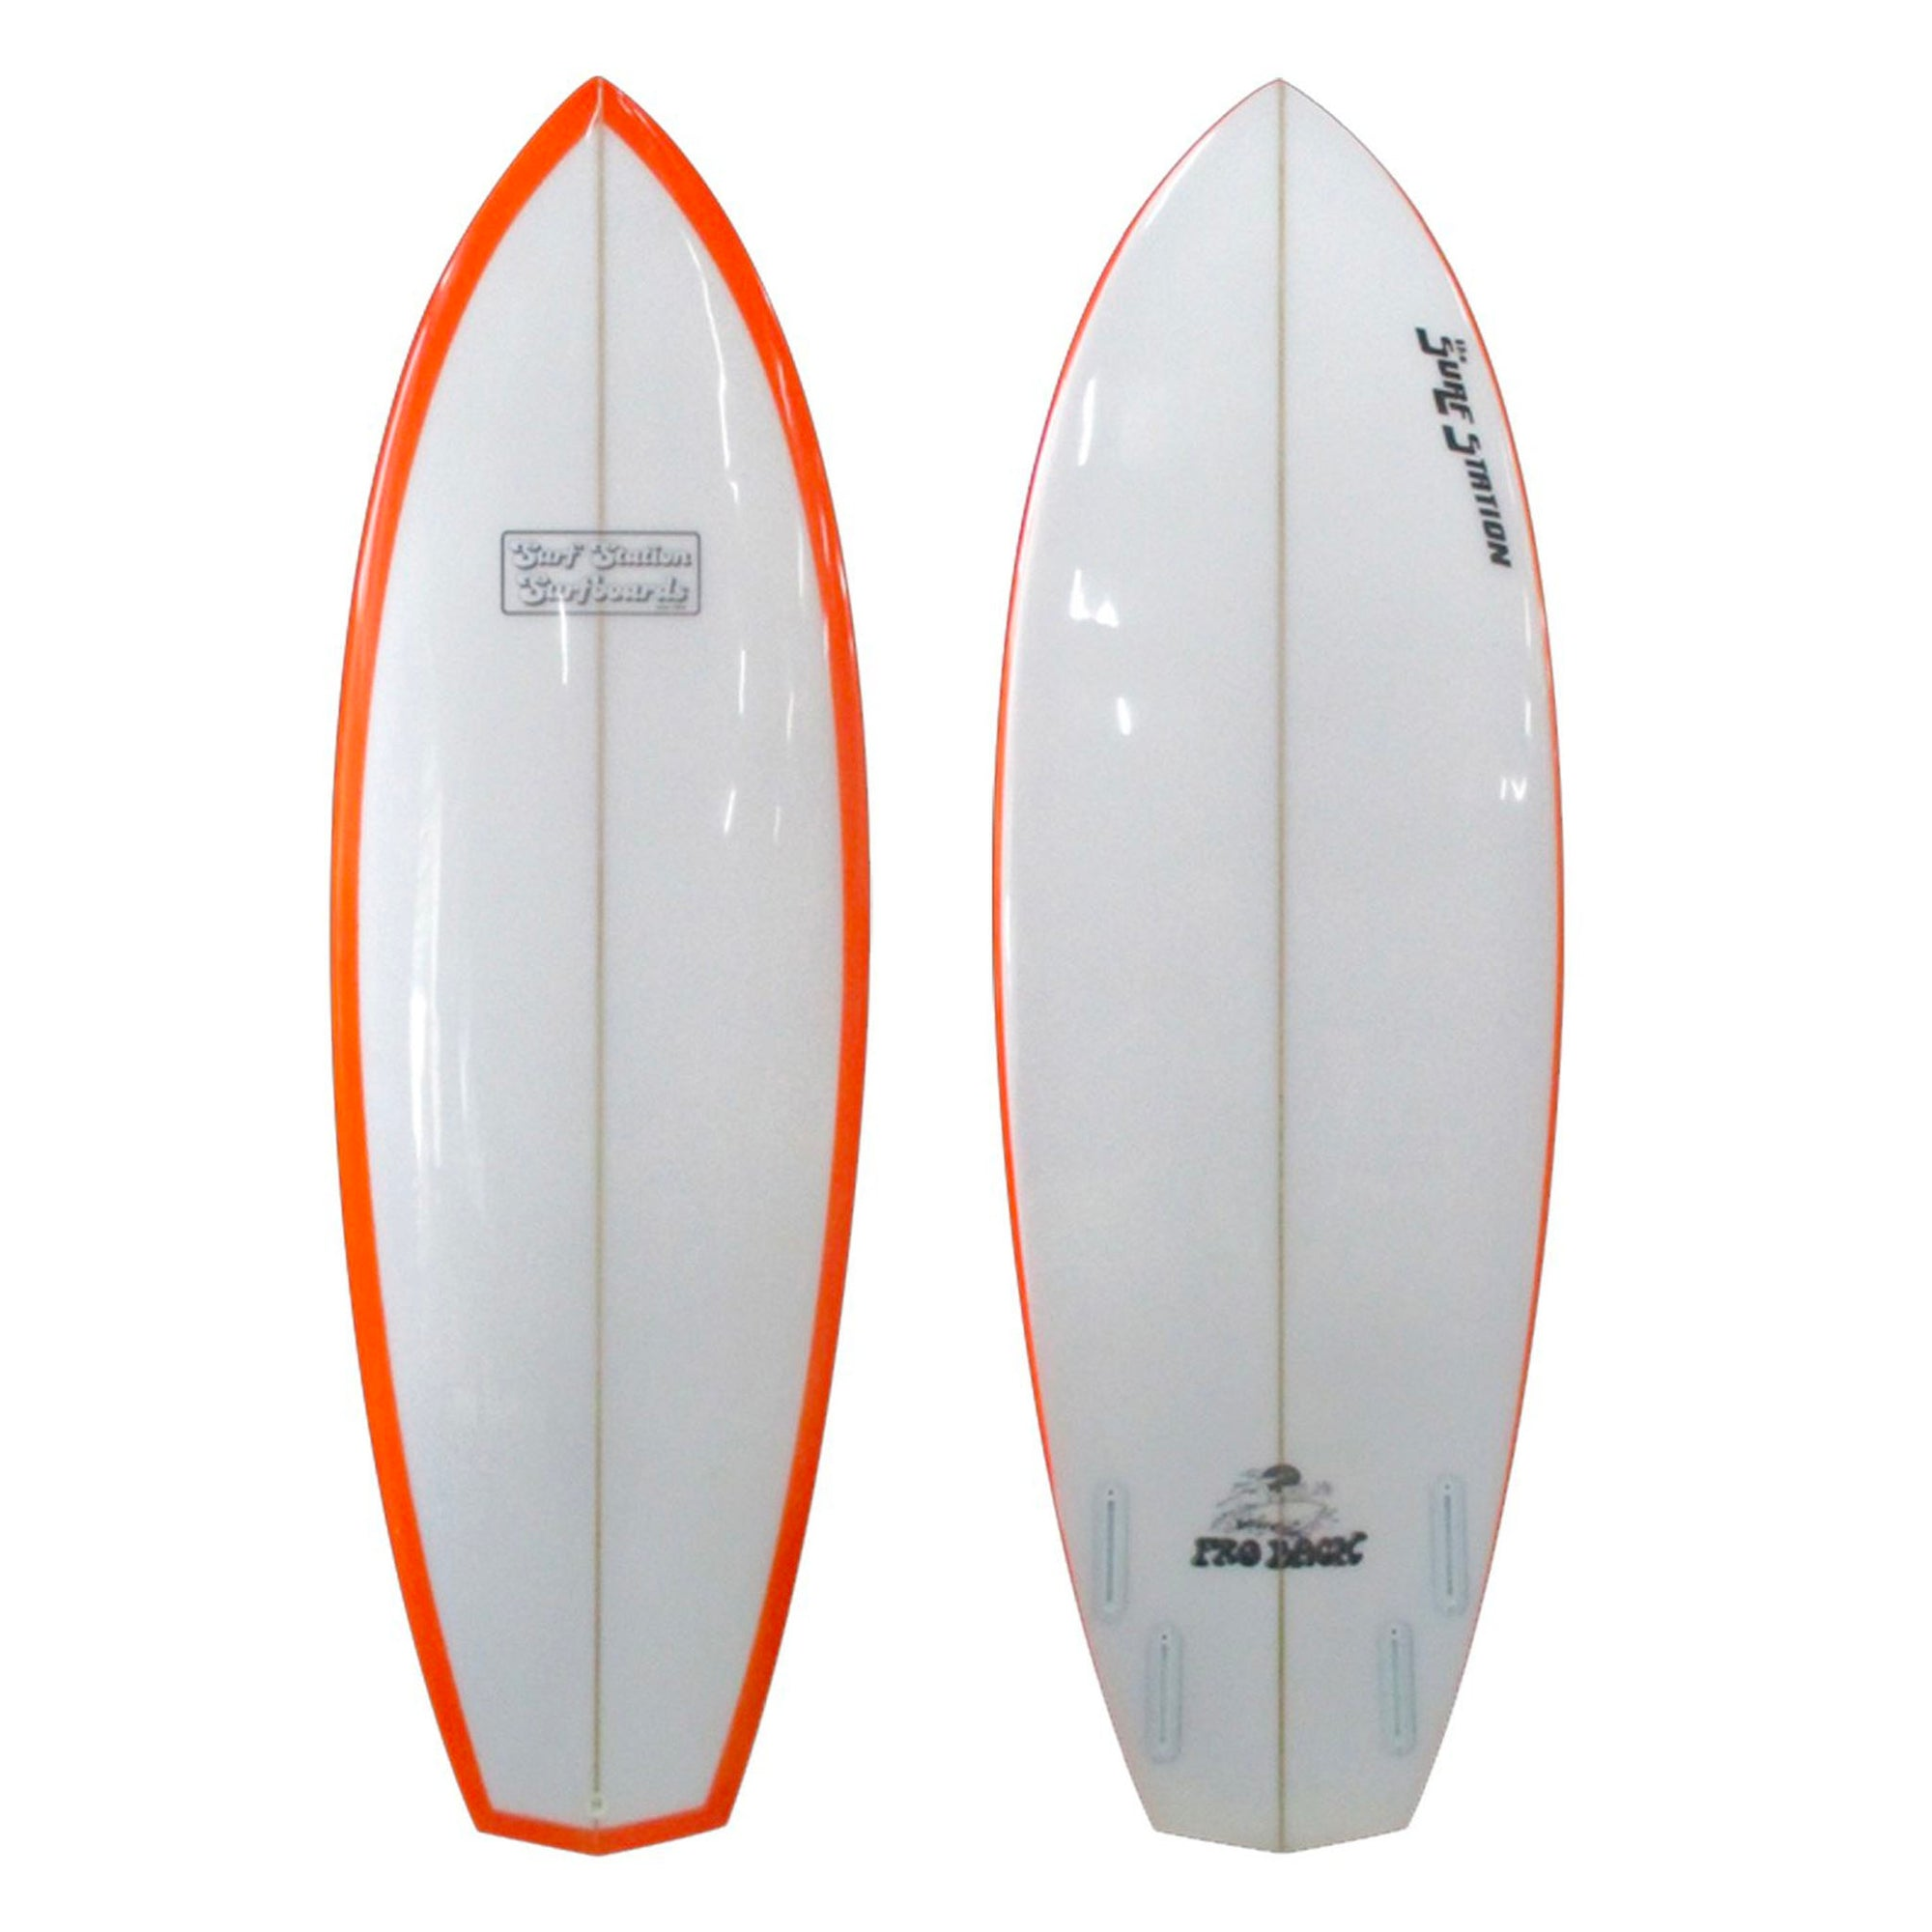 Surf Station Fro Back Surfboard - Diamond